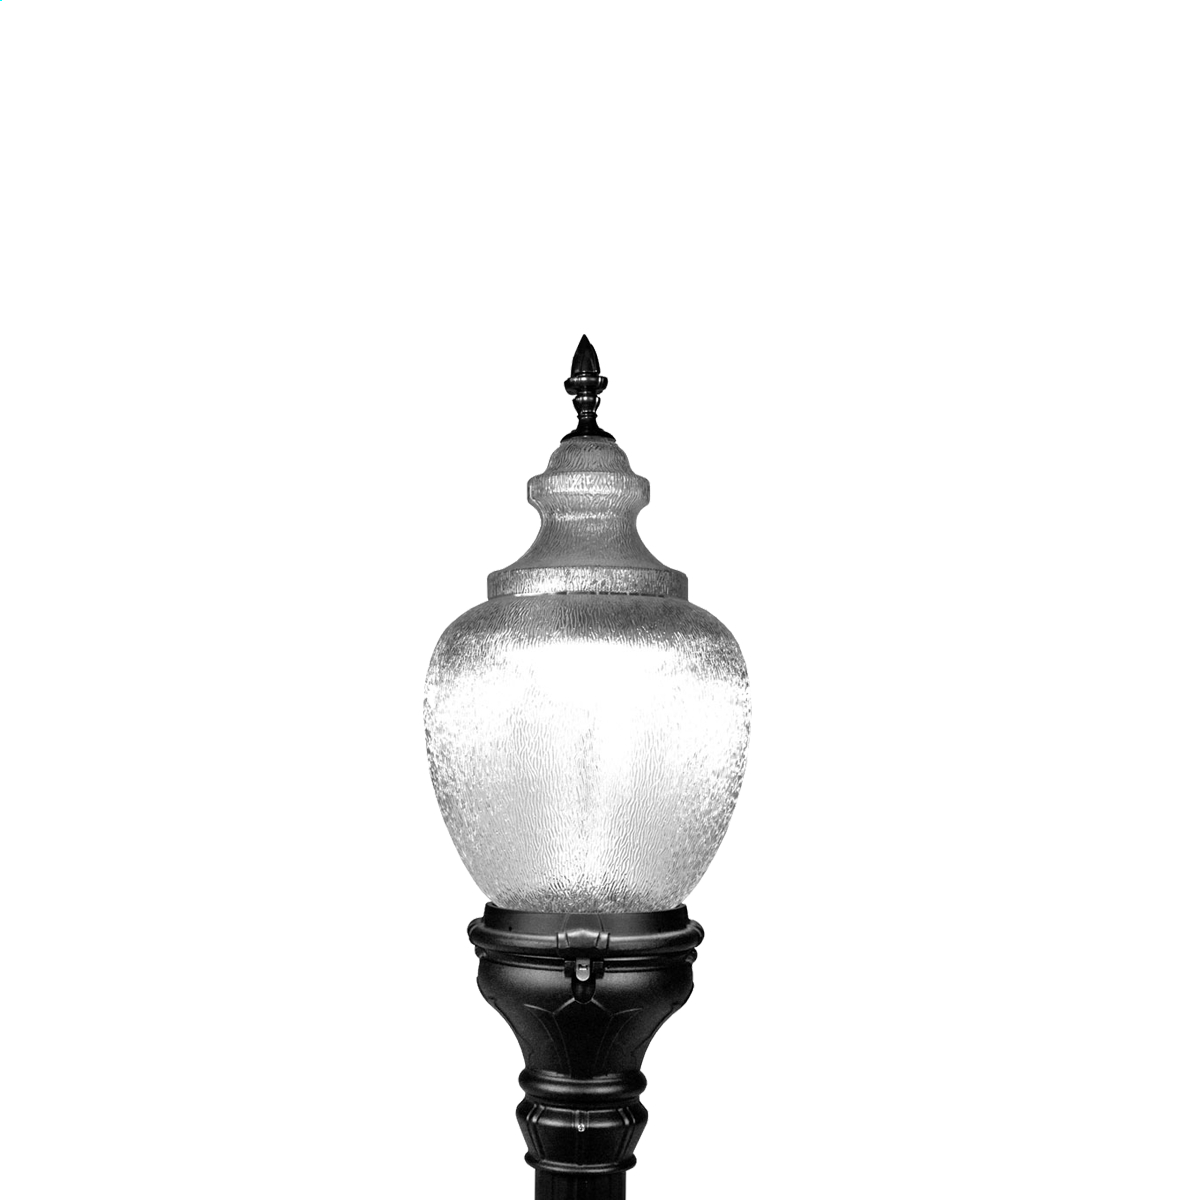 Federal Globe™ Small. by Architectural Area Lighting  sc 1 st  Hubbell & Federal Globe™ Small | Brand | Architectural Area Lighting